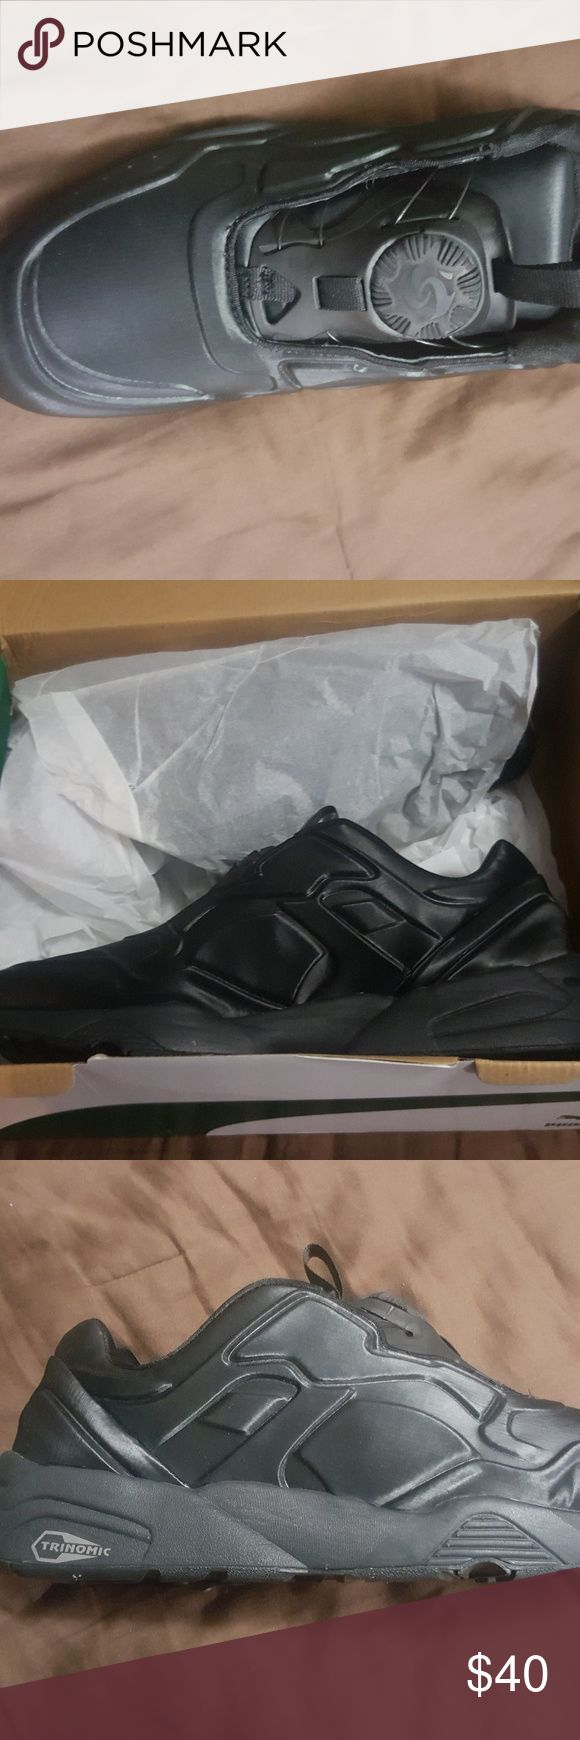 PUMA TRIPTONIC TRIPLE BLACK PUMA, dial lace HEAT SEEKERS! No laces, PUMA exclusive Dial-Tech tightening system. BRAND NEW, NEVER BEEN WORN, LOOKING FOR SALE OR TRADES!😉 Puma Shoes Sneakers